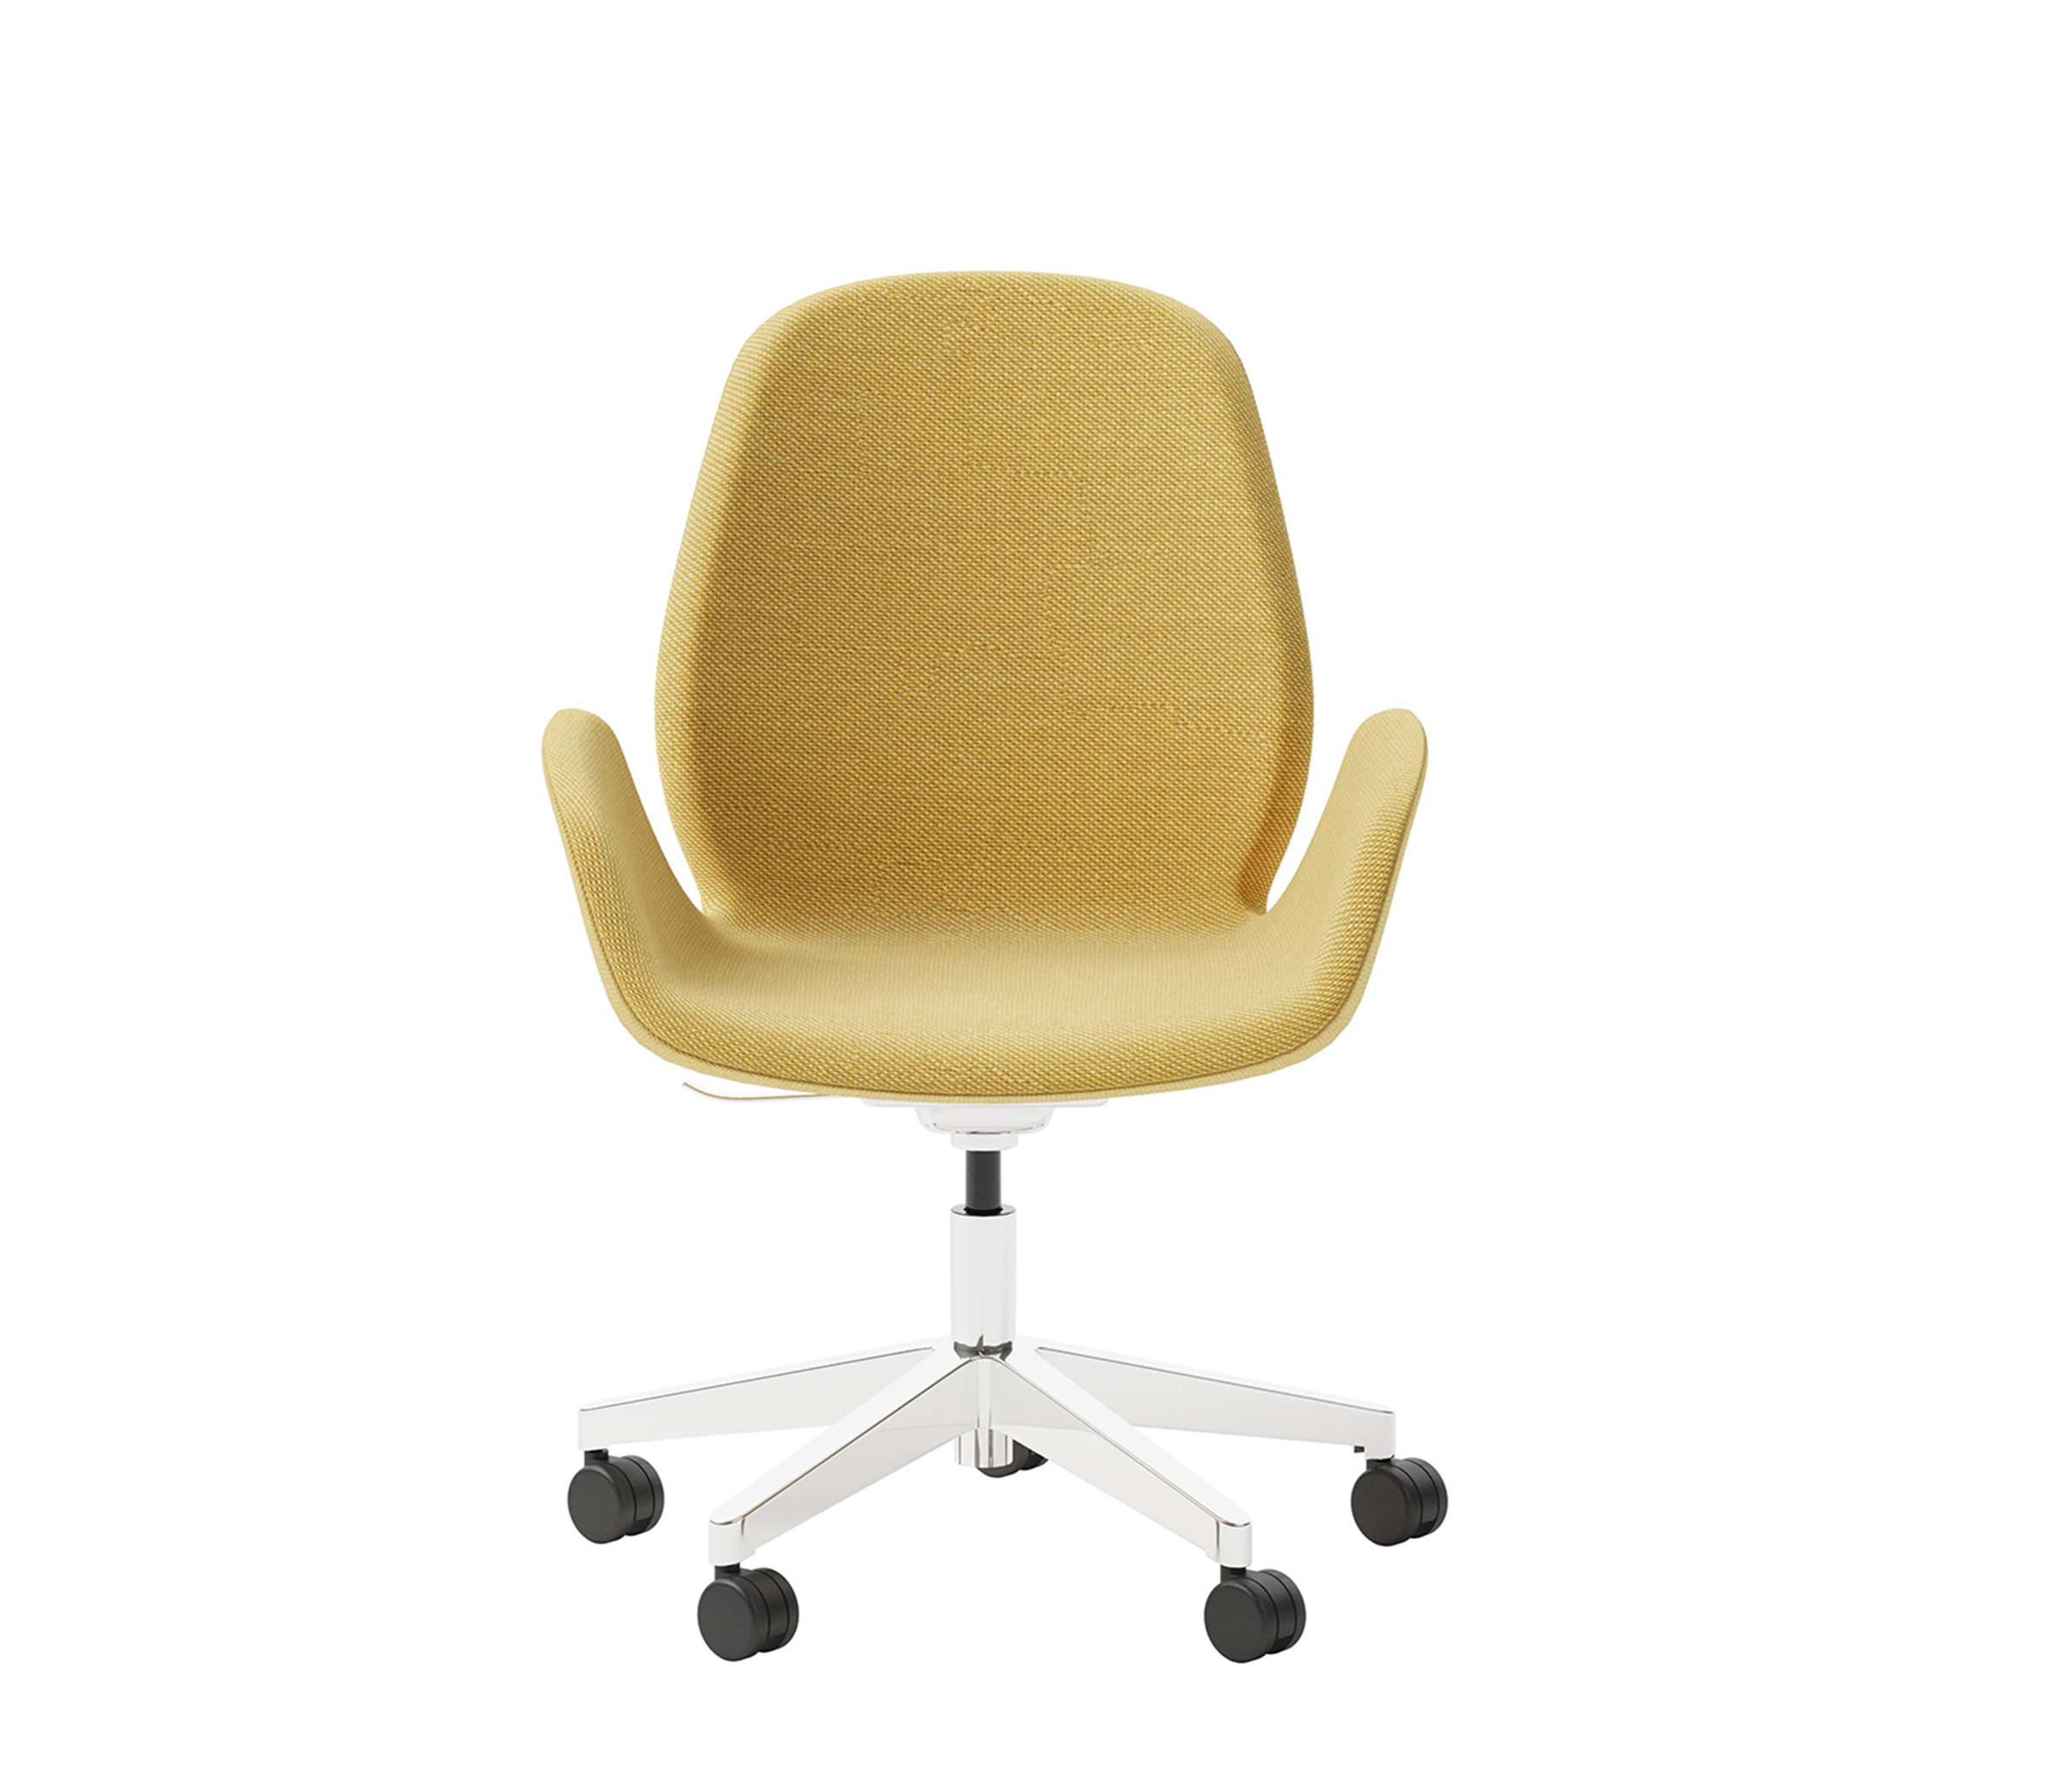 Magnolia By ERSA | Office Chairs Magnolia By ERSA | Office Chairs ...